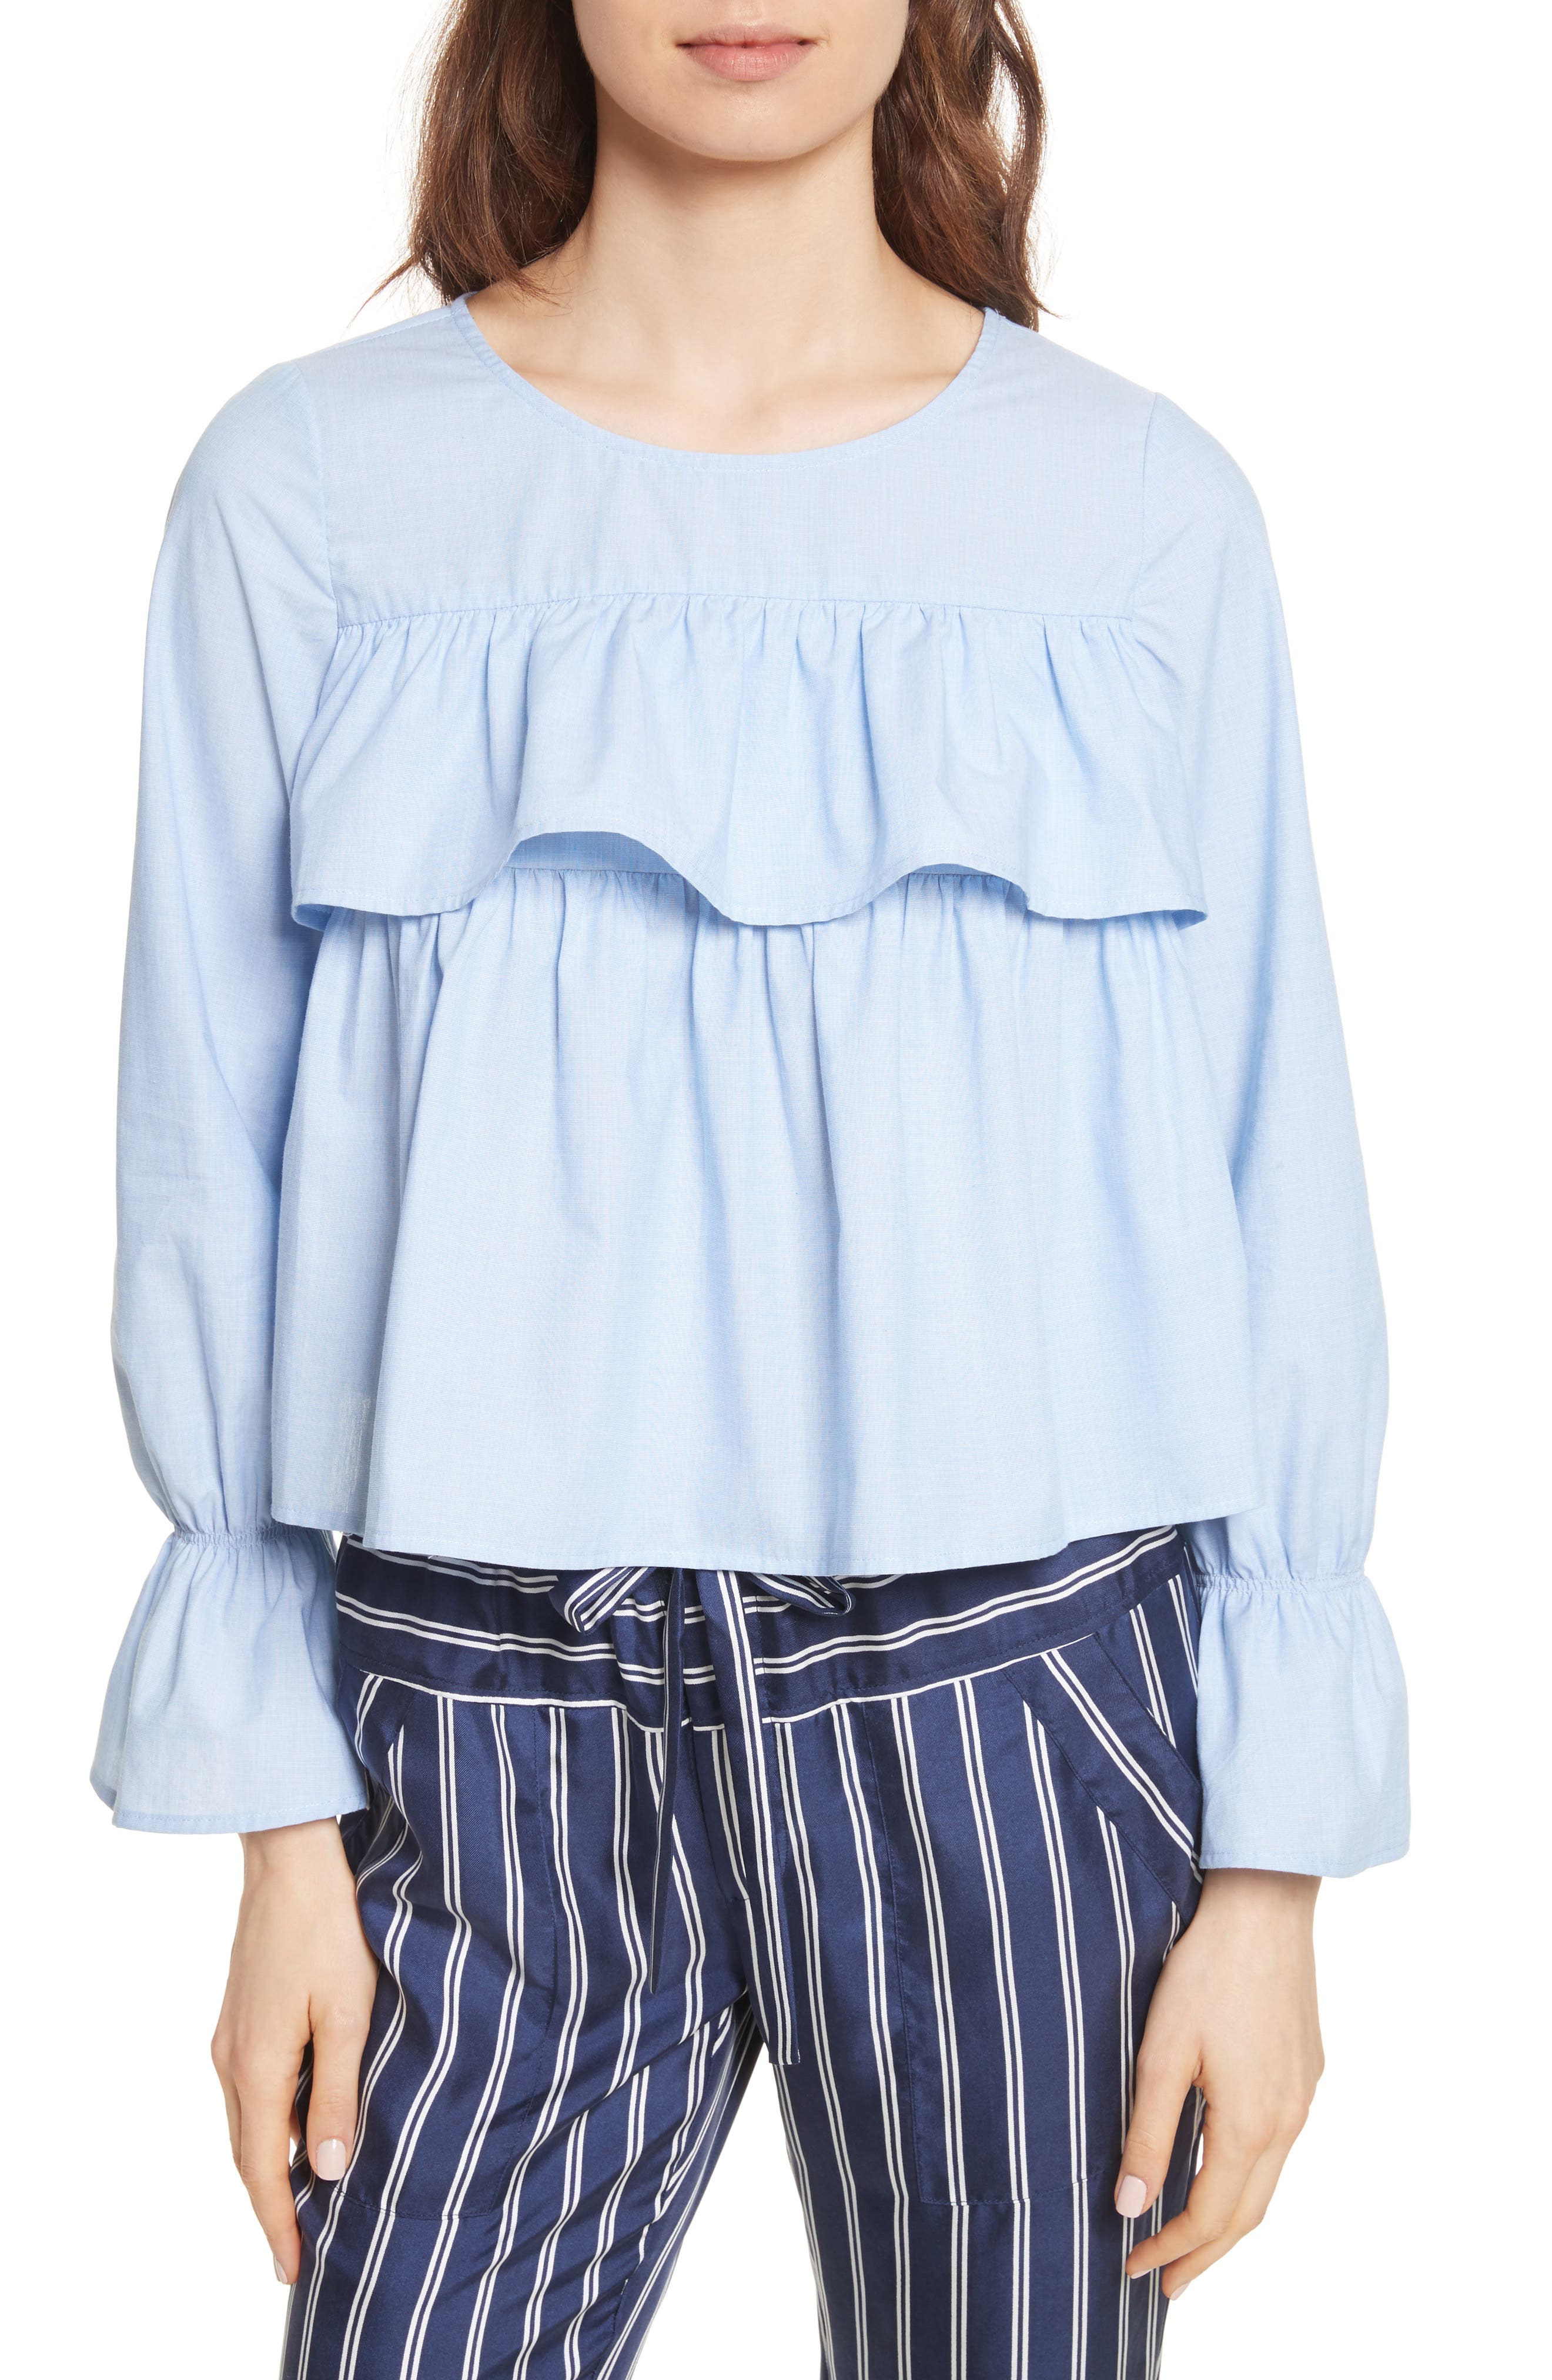 Adotte Cotton Top,                         Main,                         color, Maritime Chambray